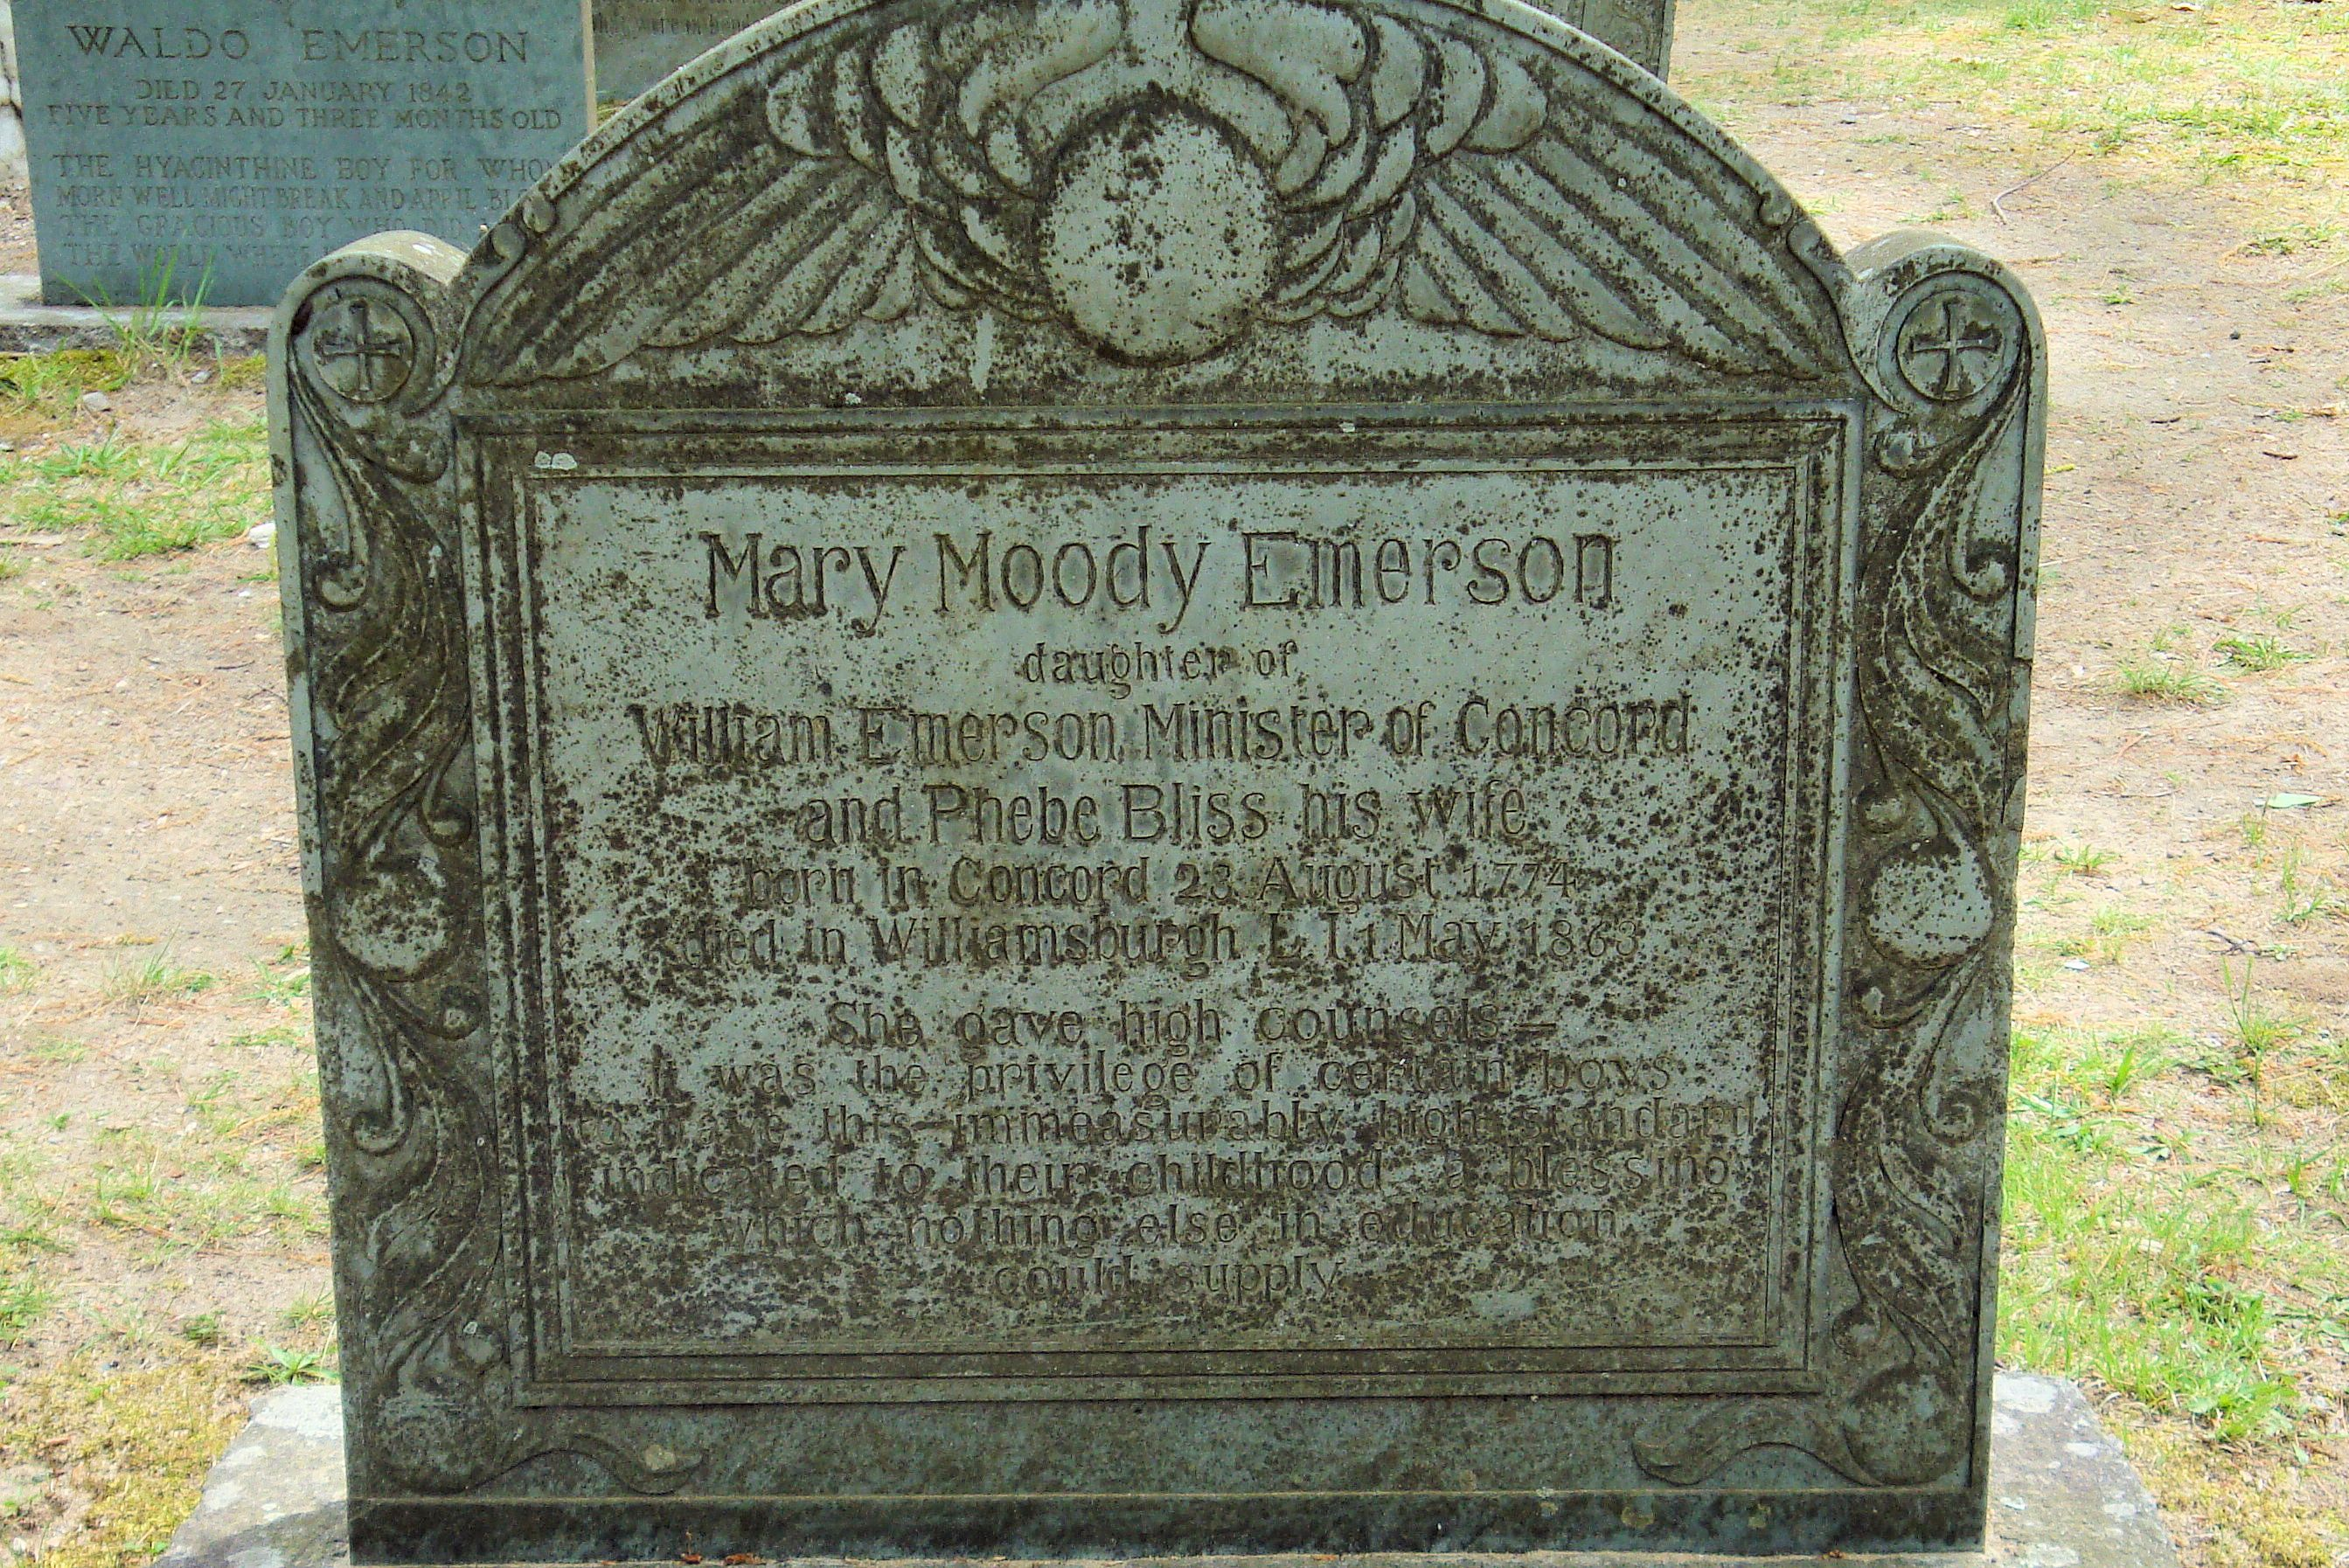 The headstone of Mary Moody Emerson in Sleepy Hollow Cemetery, Concord, Massachusetts